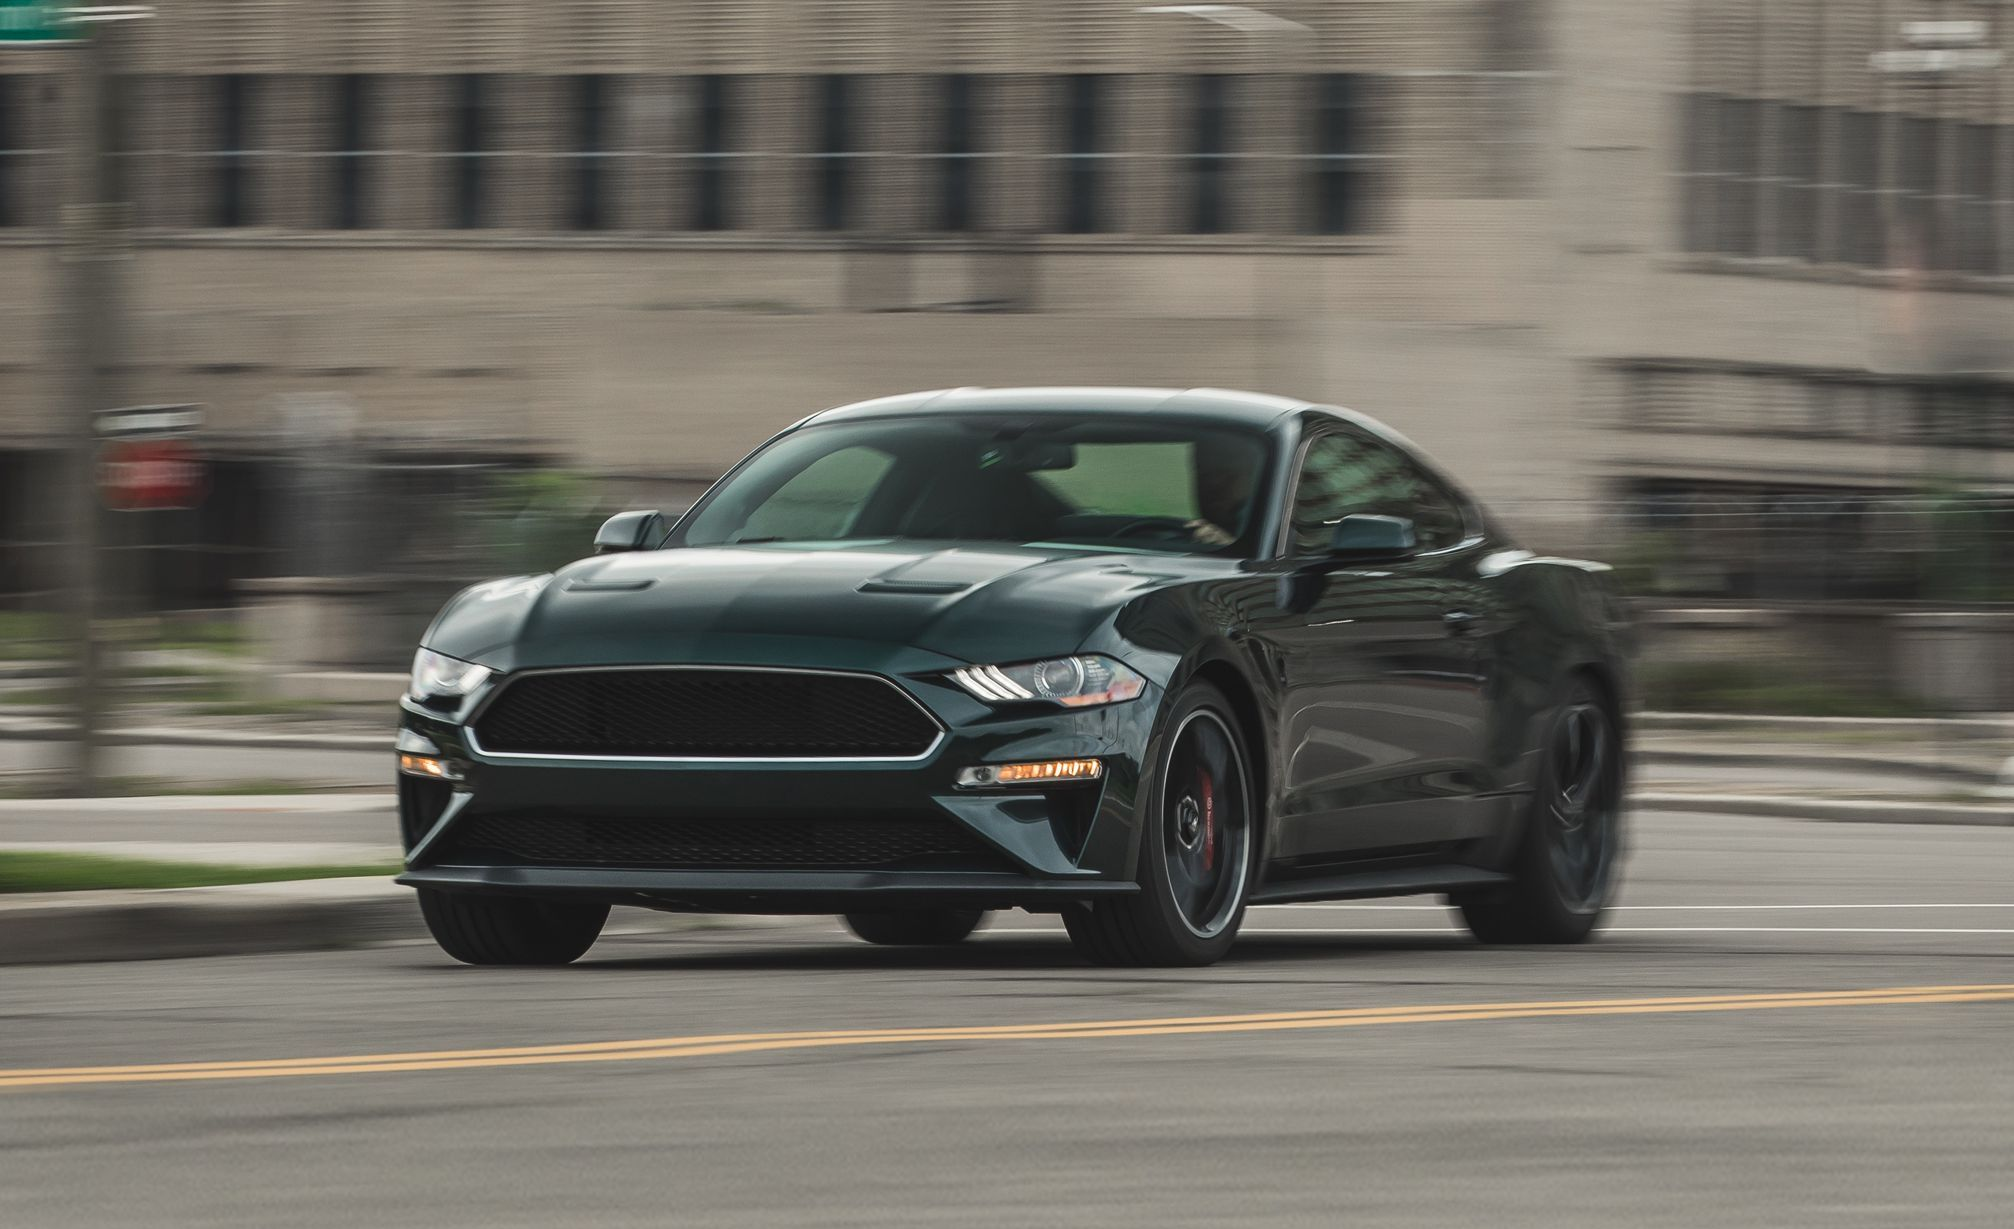 2019 Ford Mustang Bullitt: Forget McQueen, Just Drive the Car